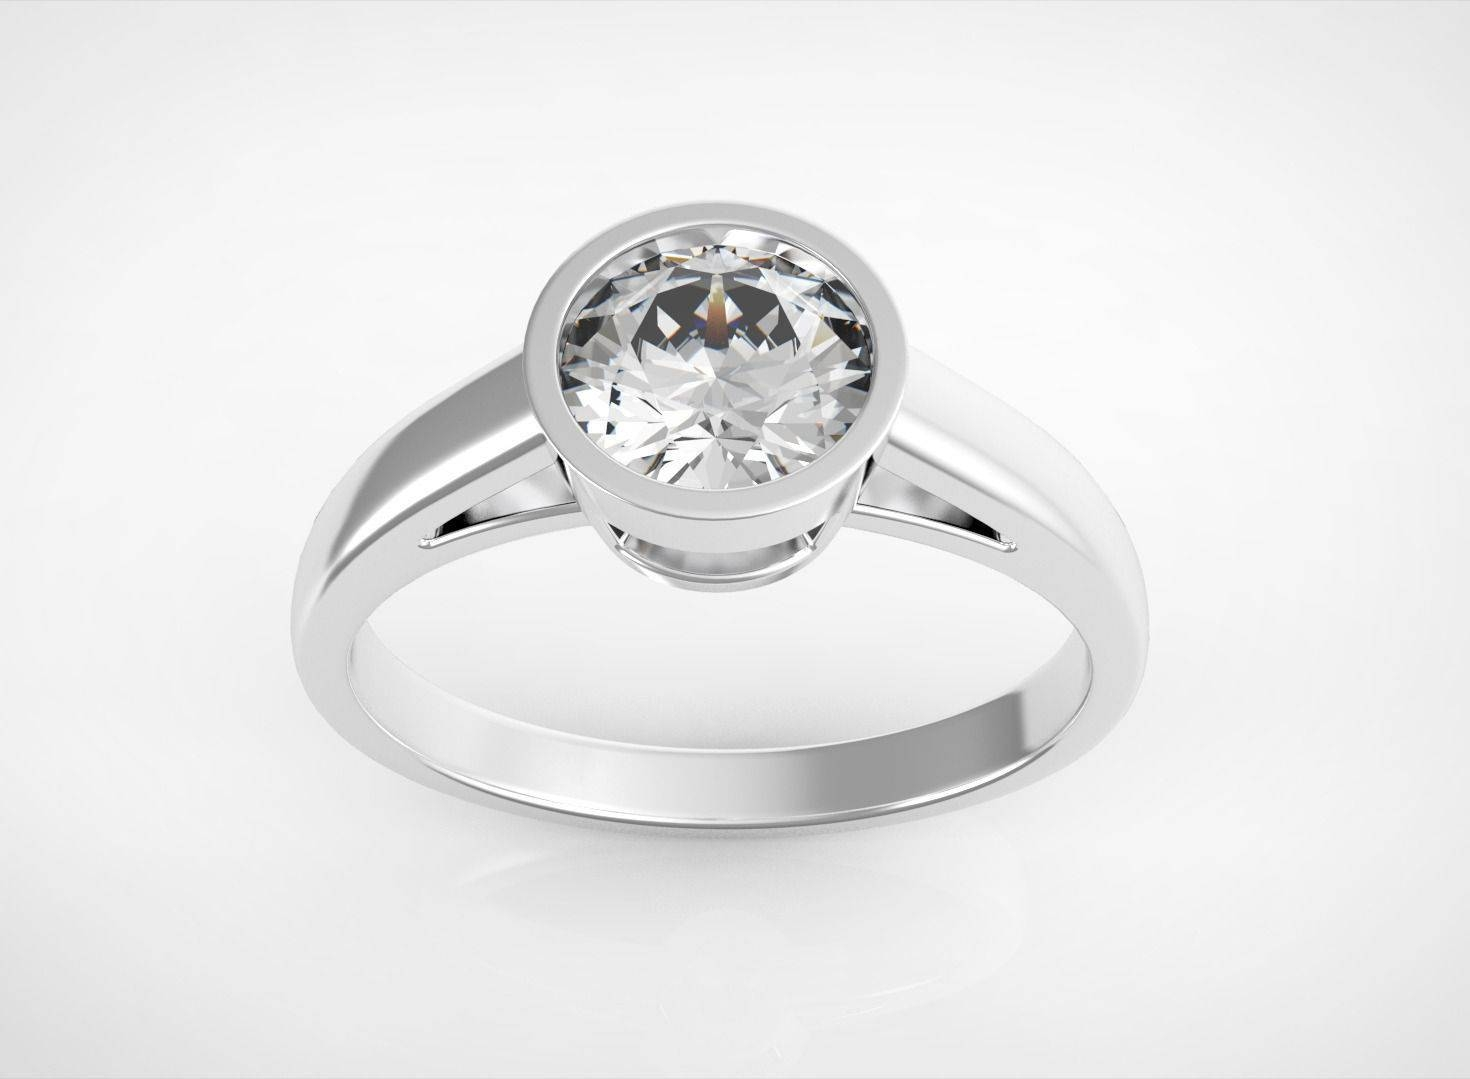 3D Printable Model Engagement Ring With One Stone Regarding One Rings Engagement Rings (View 2 of 15)